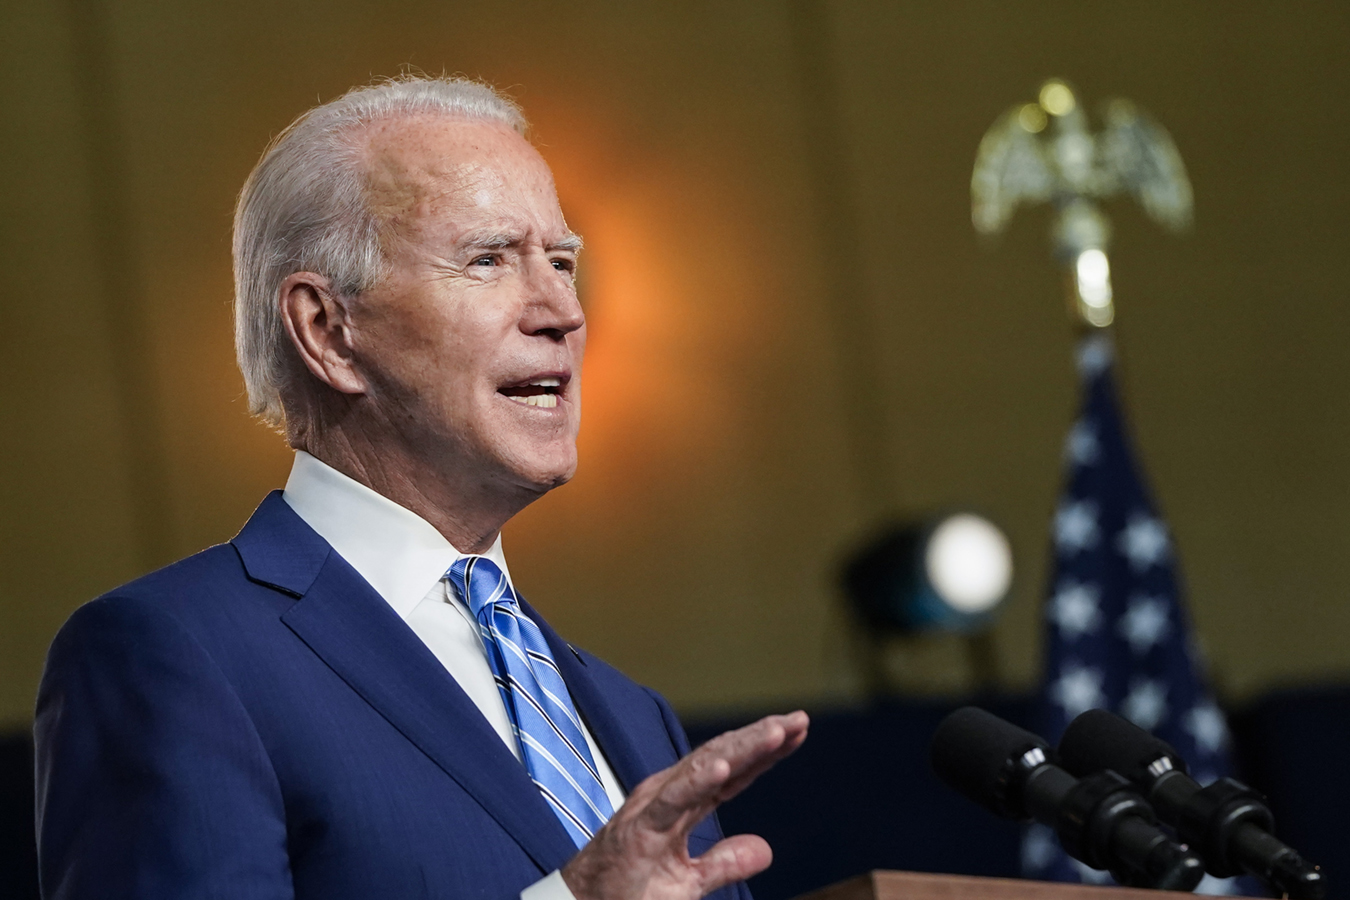 Biden Plan to Lower Medicare Eligibility Age to 60 Faces Hostility From Hospitals